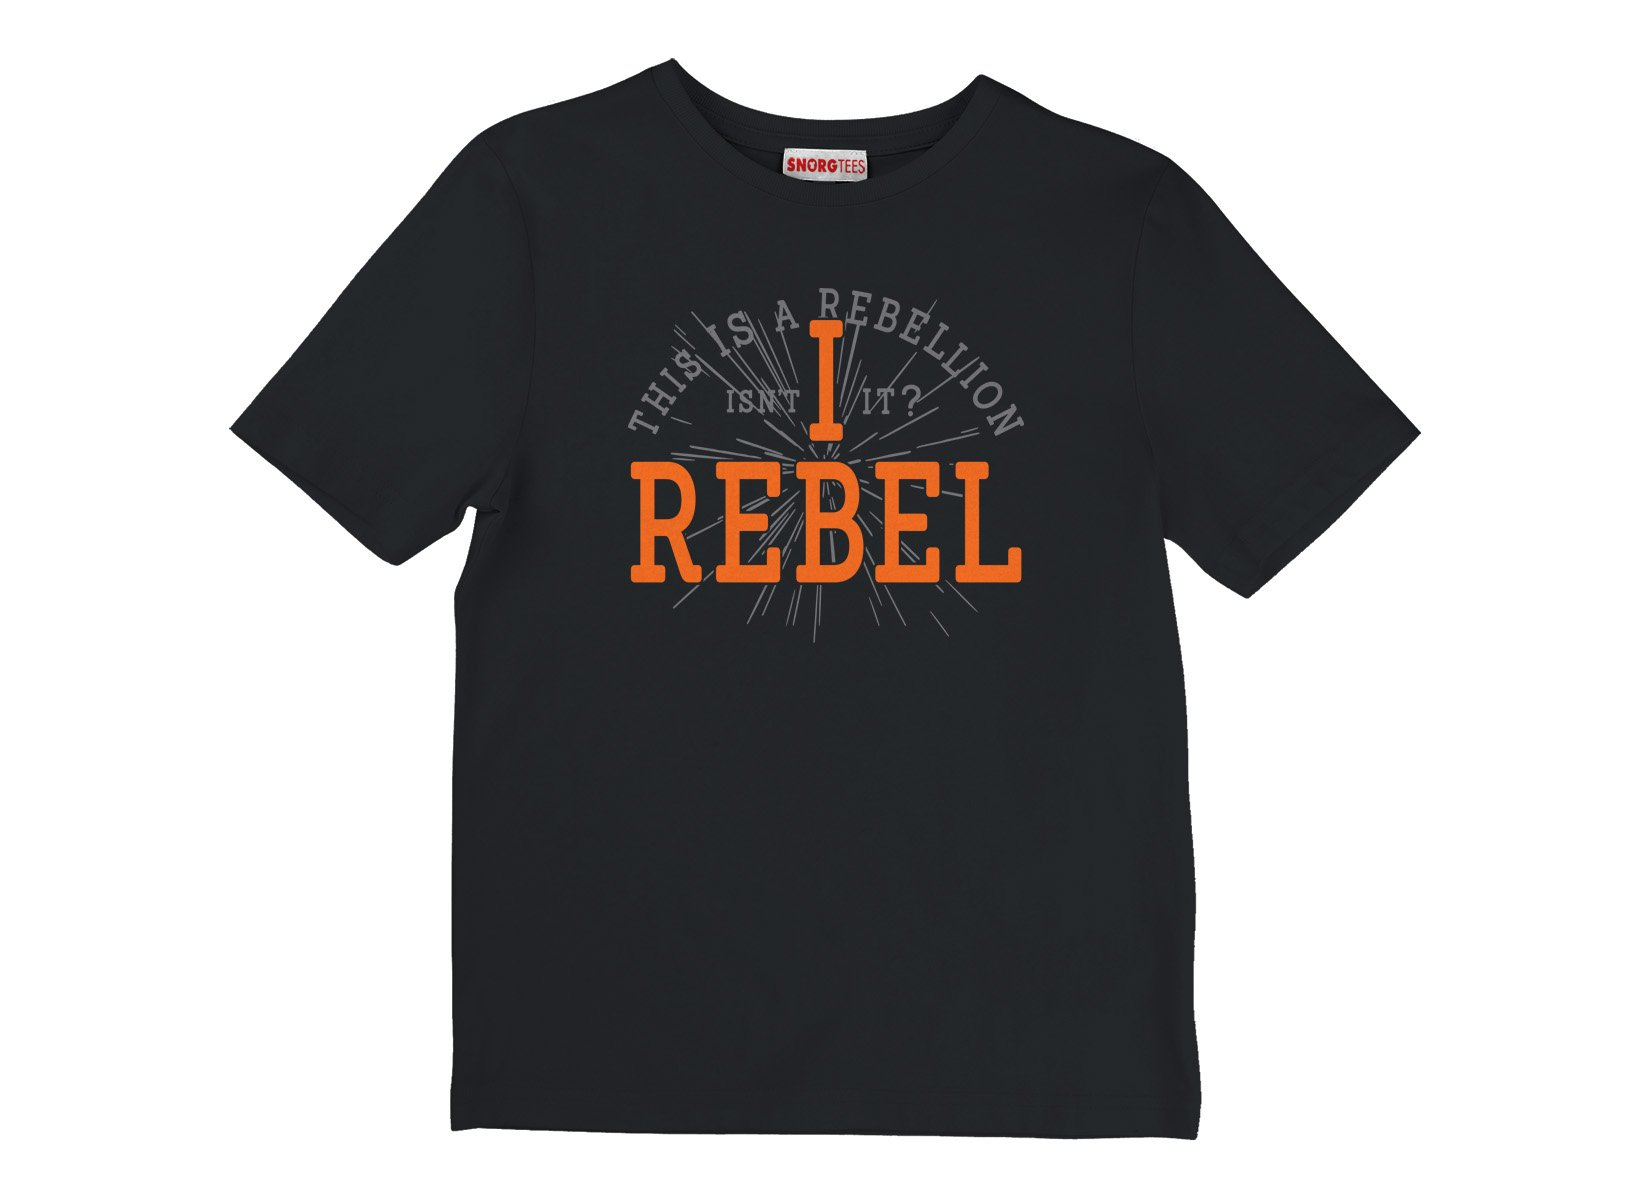 I Rebel on Kids T-Shirt